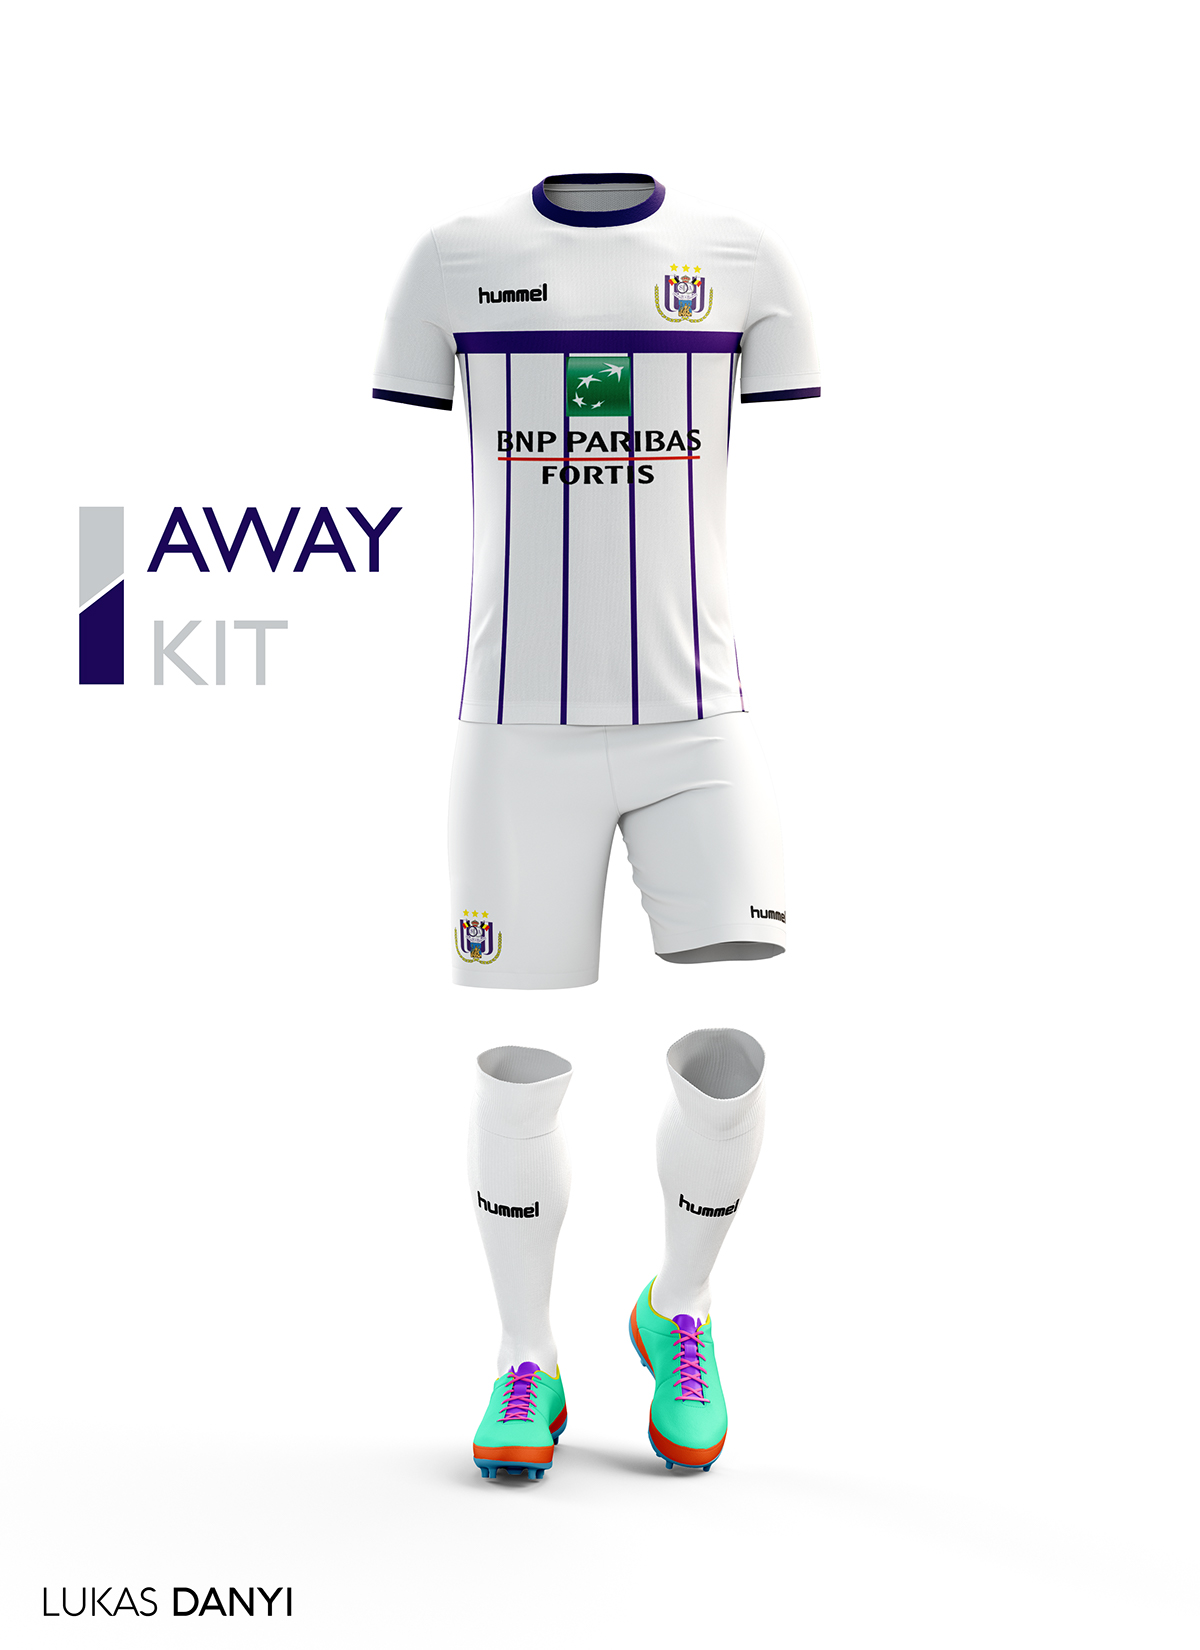 04c357f8fff I decided to design all pro league teams football kits but all in the brand  Hummel I hope you like it.